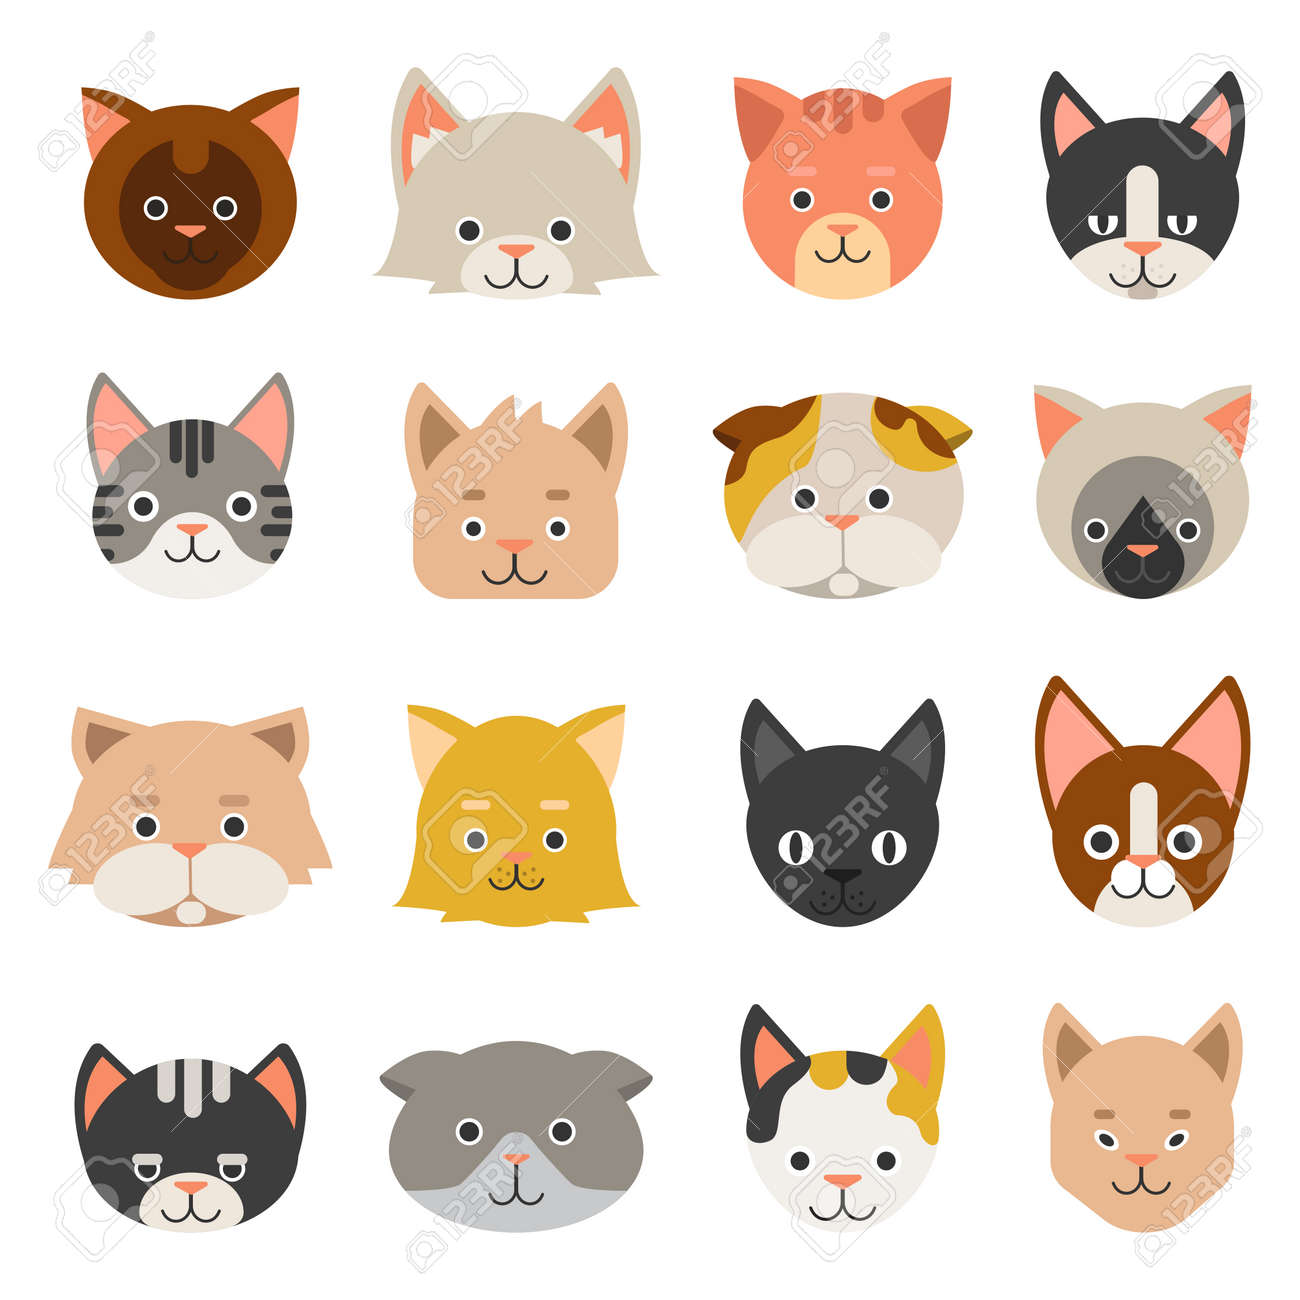 Different faces of cats - 167394467